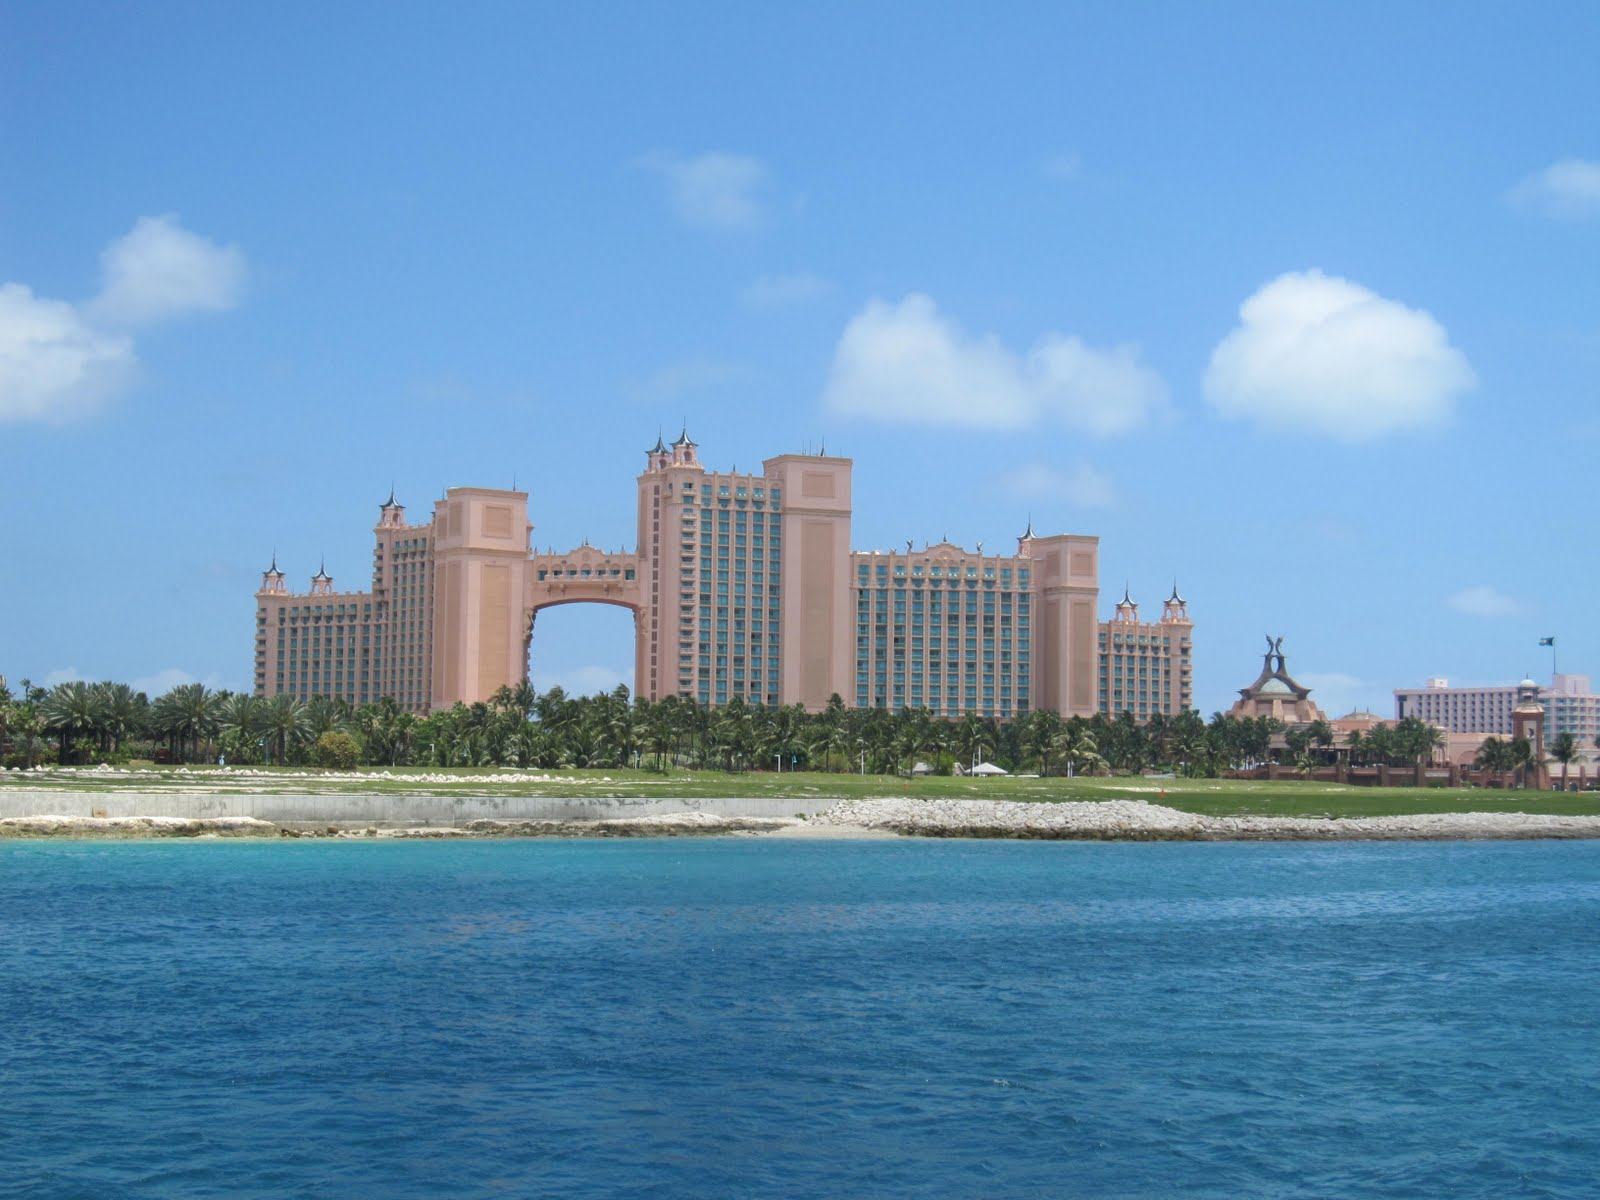 View of the massive Atlantis complex, as seen from our anchorage